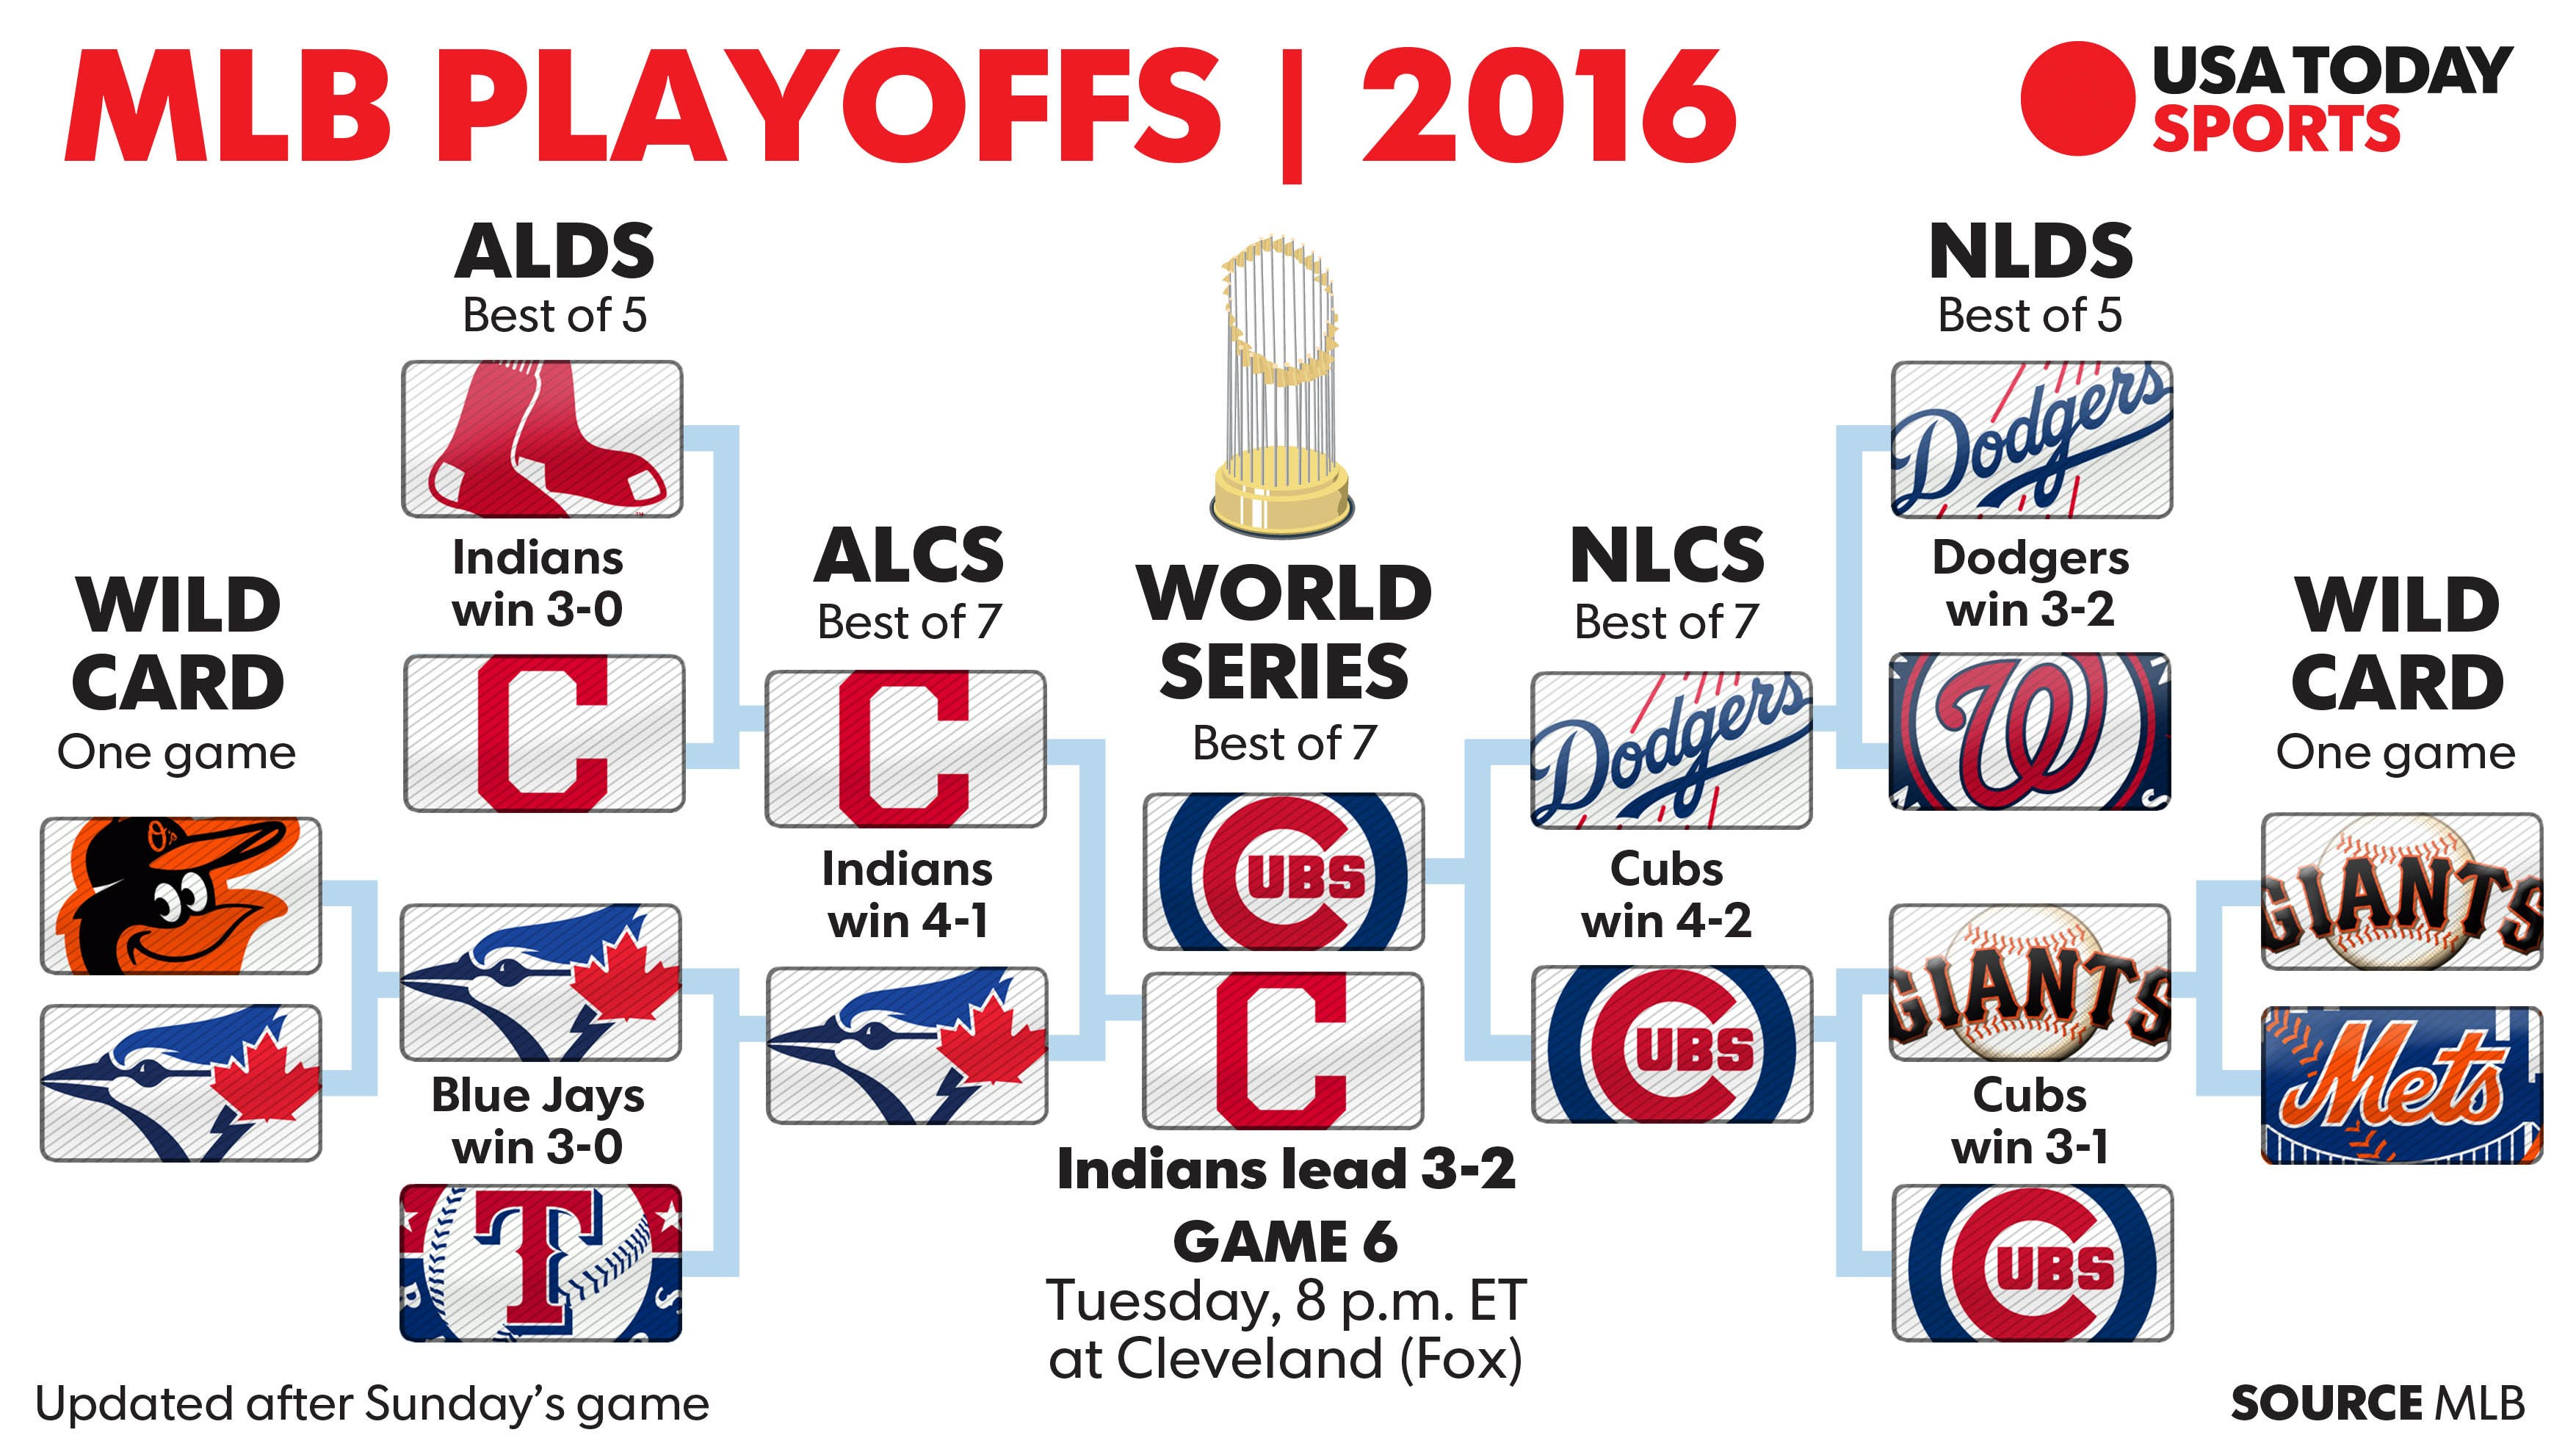 2016 mlb playoff game times